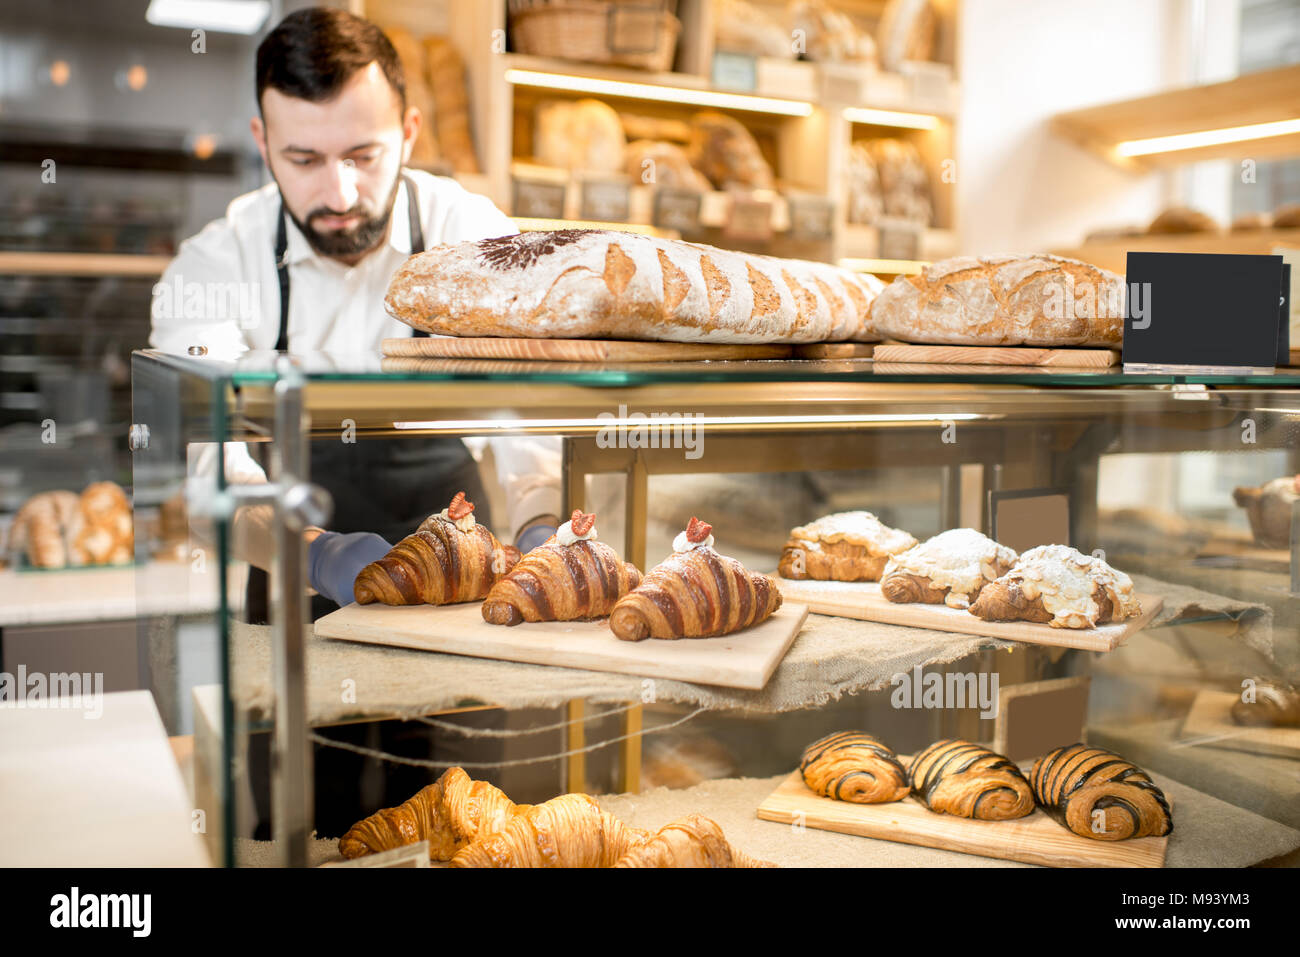 Croissant on the store showcase - Stock Image